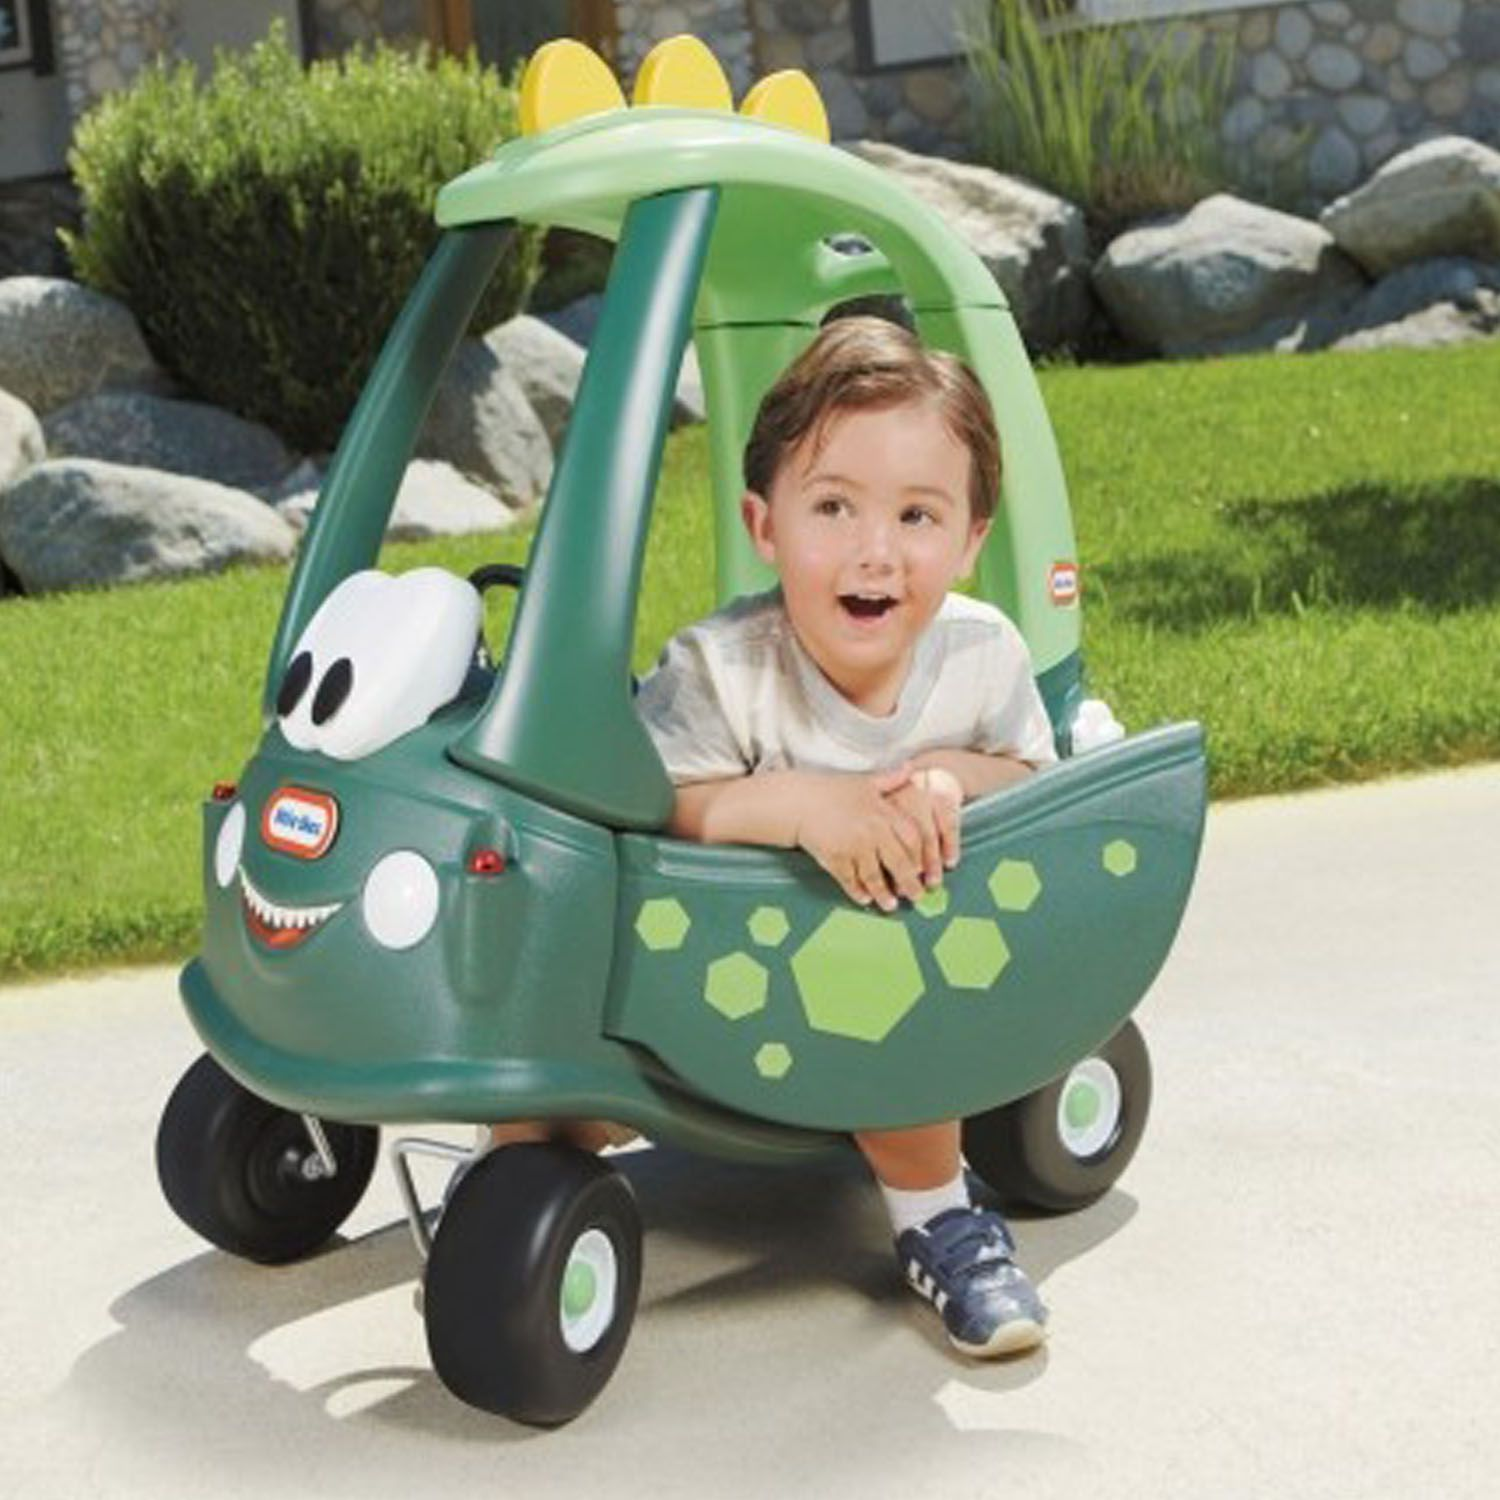 Cozy coupe dino lt-1 width=